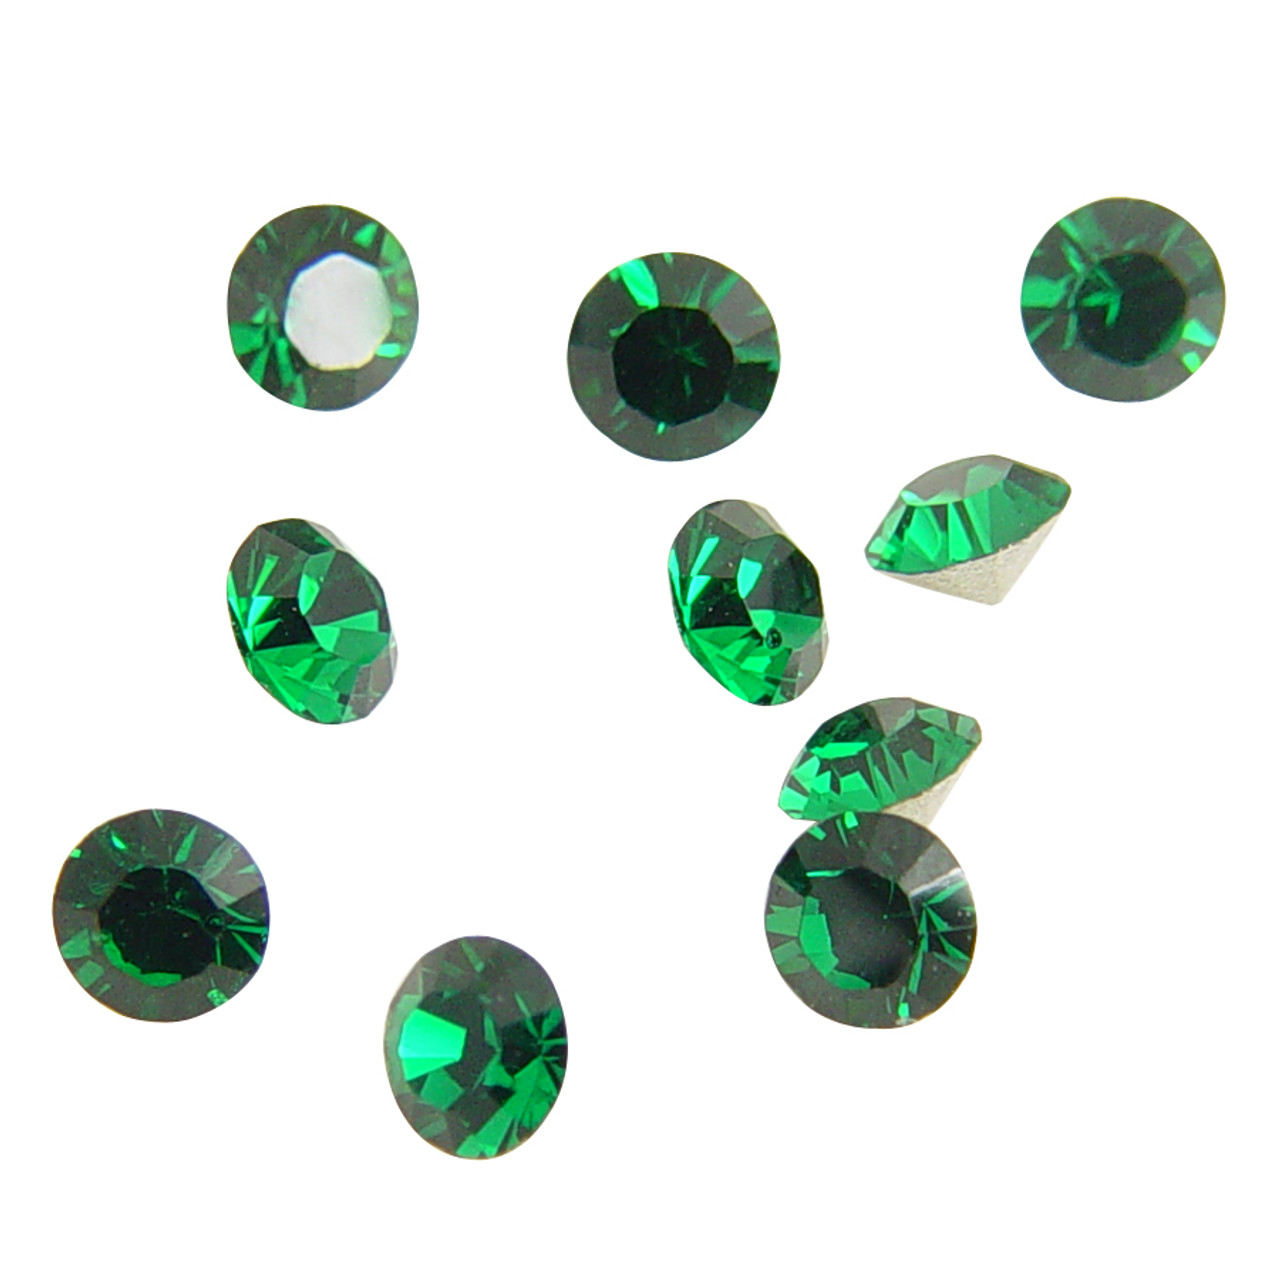 8e81903ad Loose Swarovski Crystals Green Faceted Round